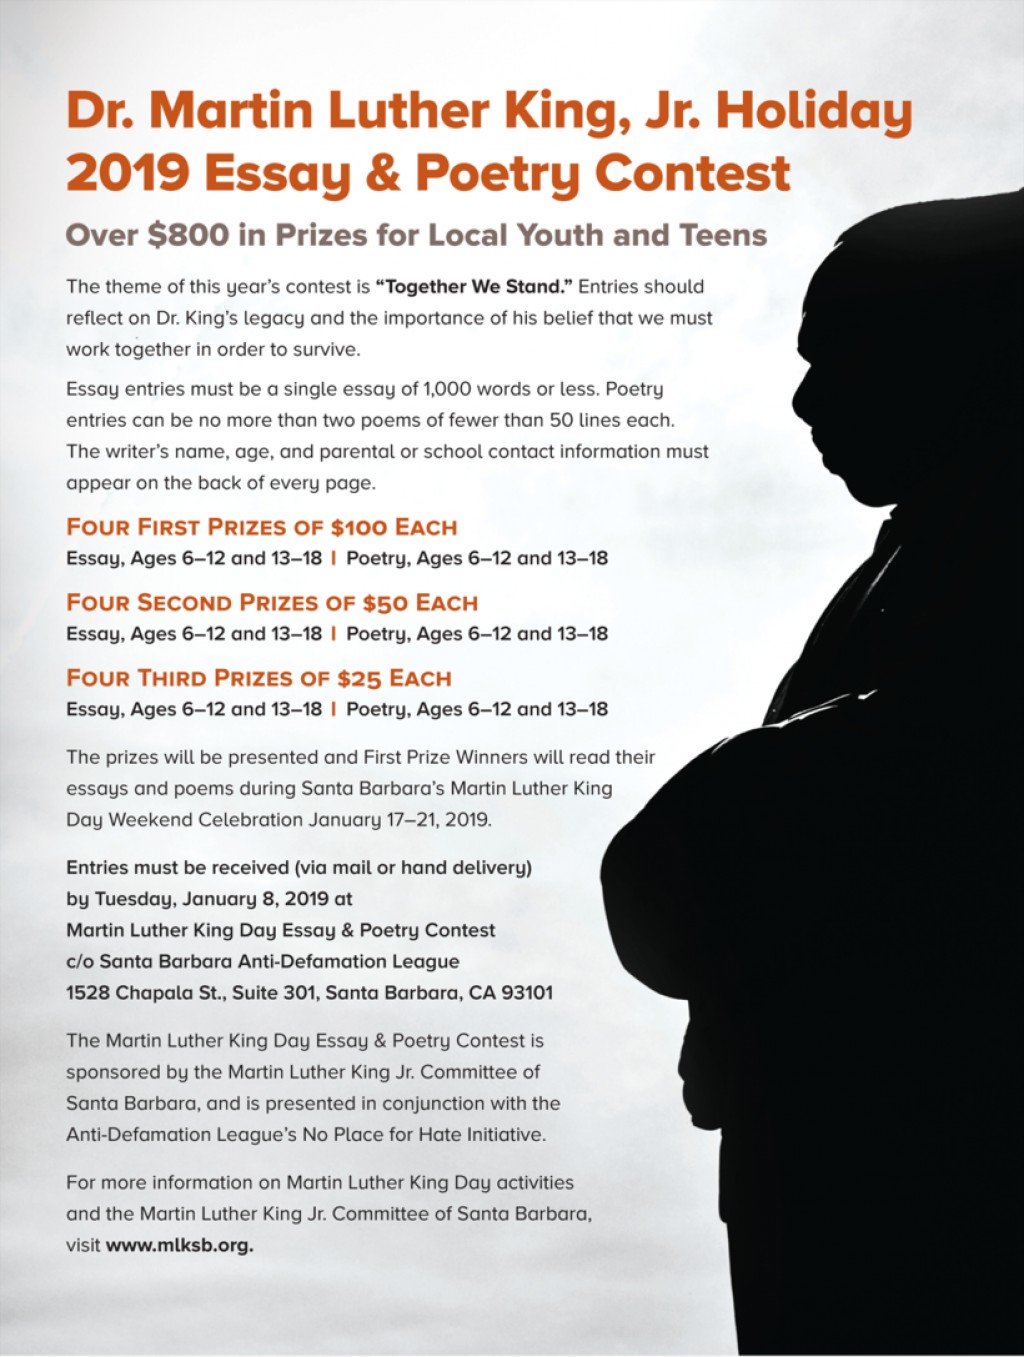 001 Essay Example Poetry Flyer Martin Luther King Remarkable Jr Contest Writing Prompts Outline Large